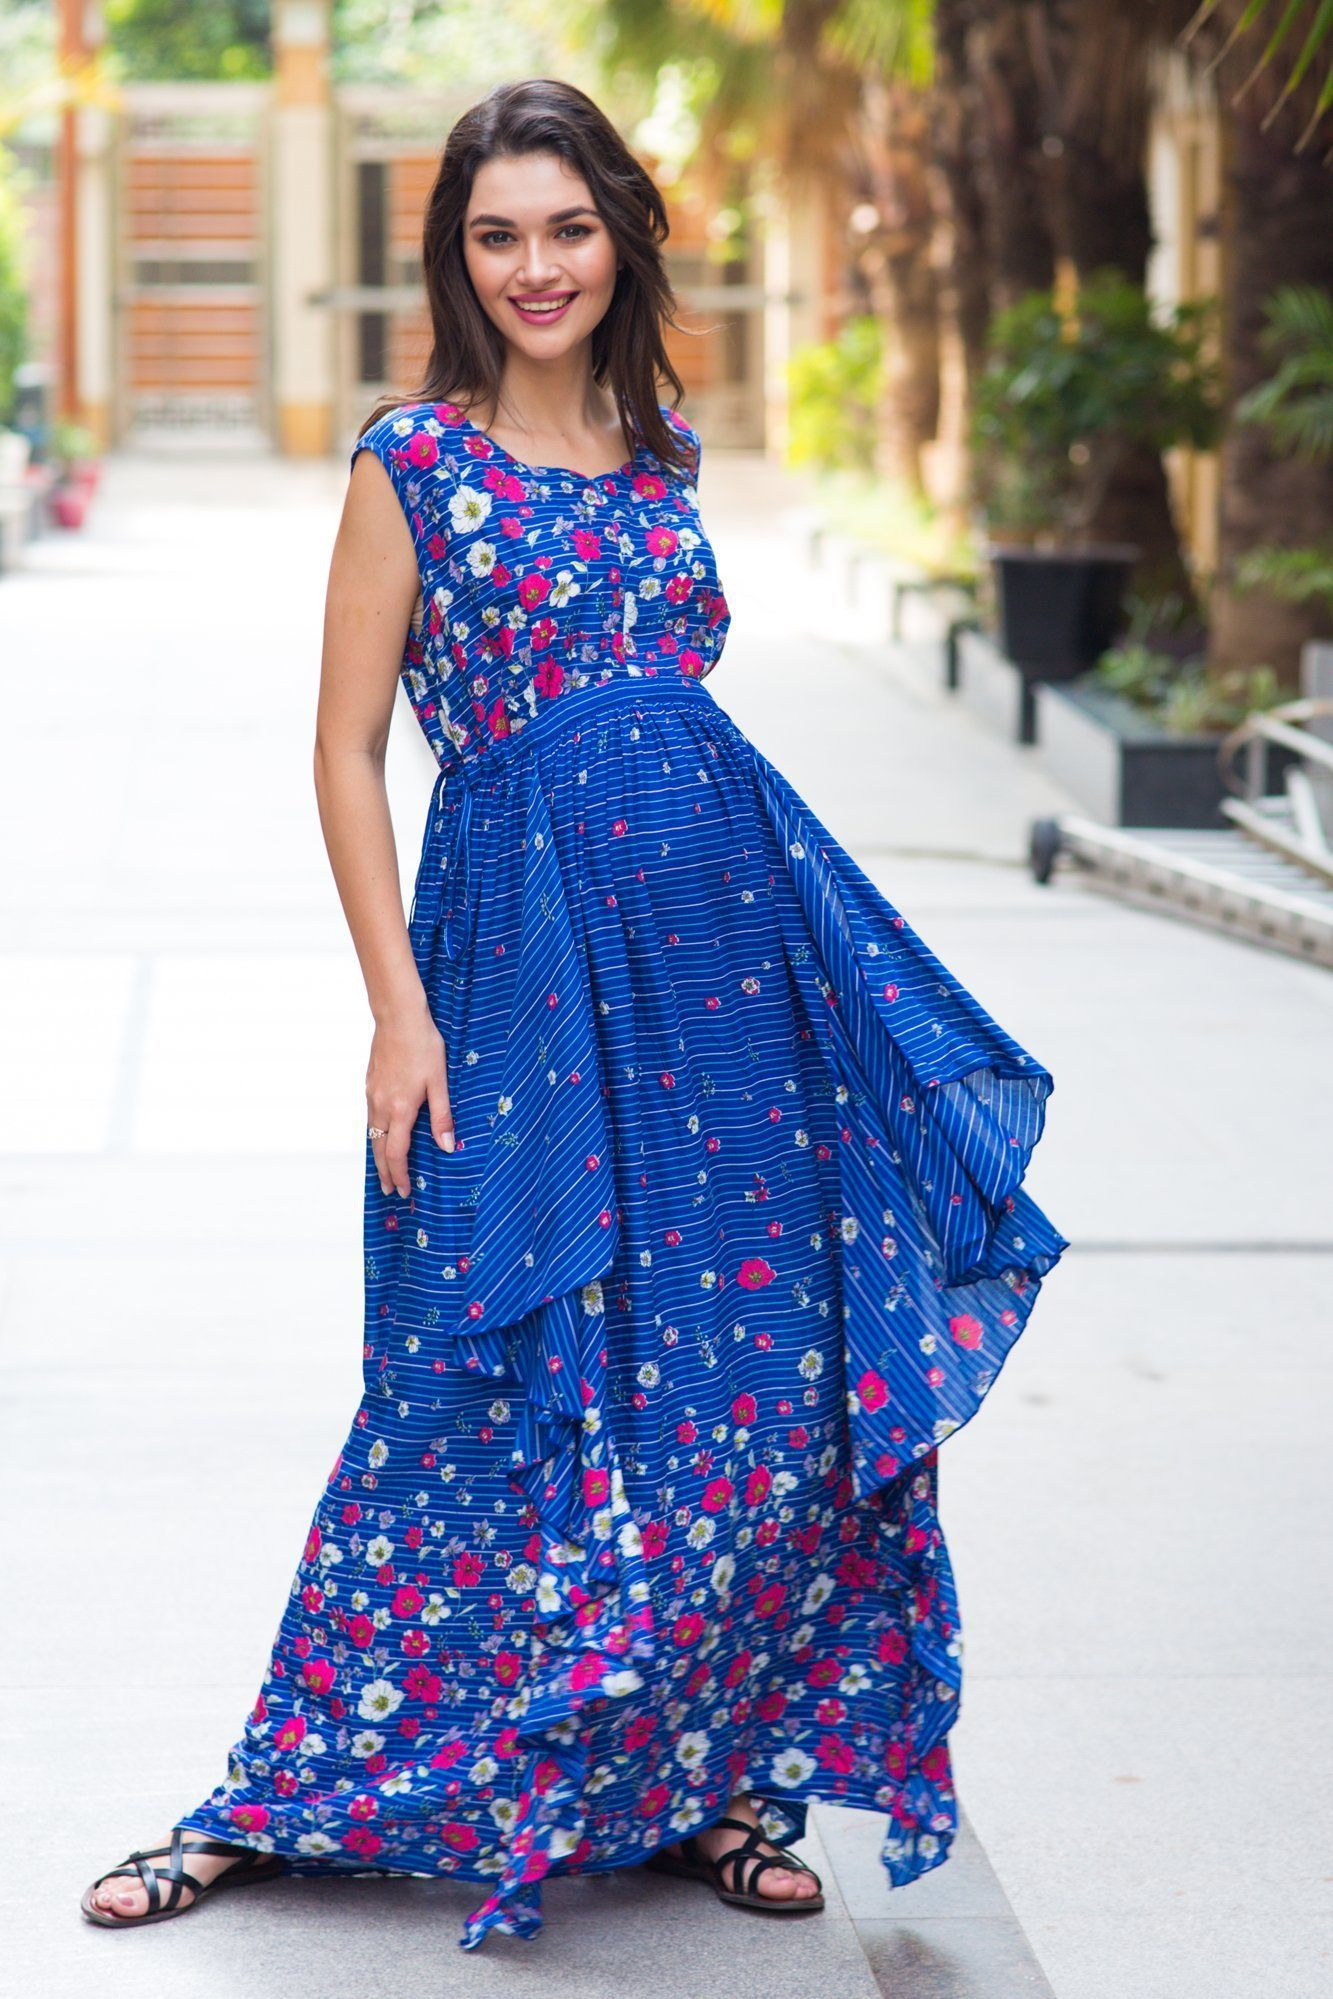 Celeste Blue Floral Luxe Maternity & Nursing Dress - MOMZJOY.COM